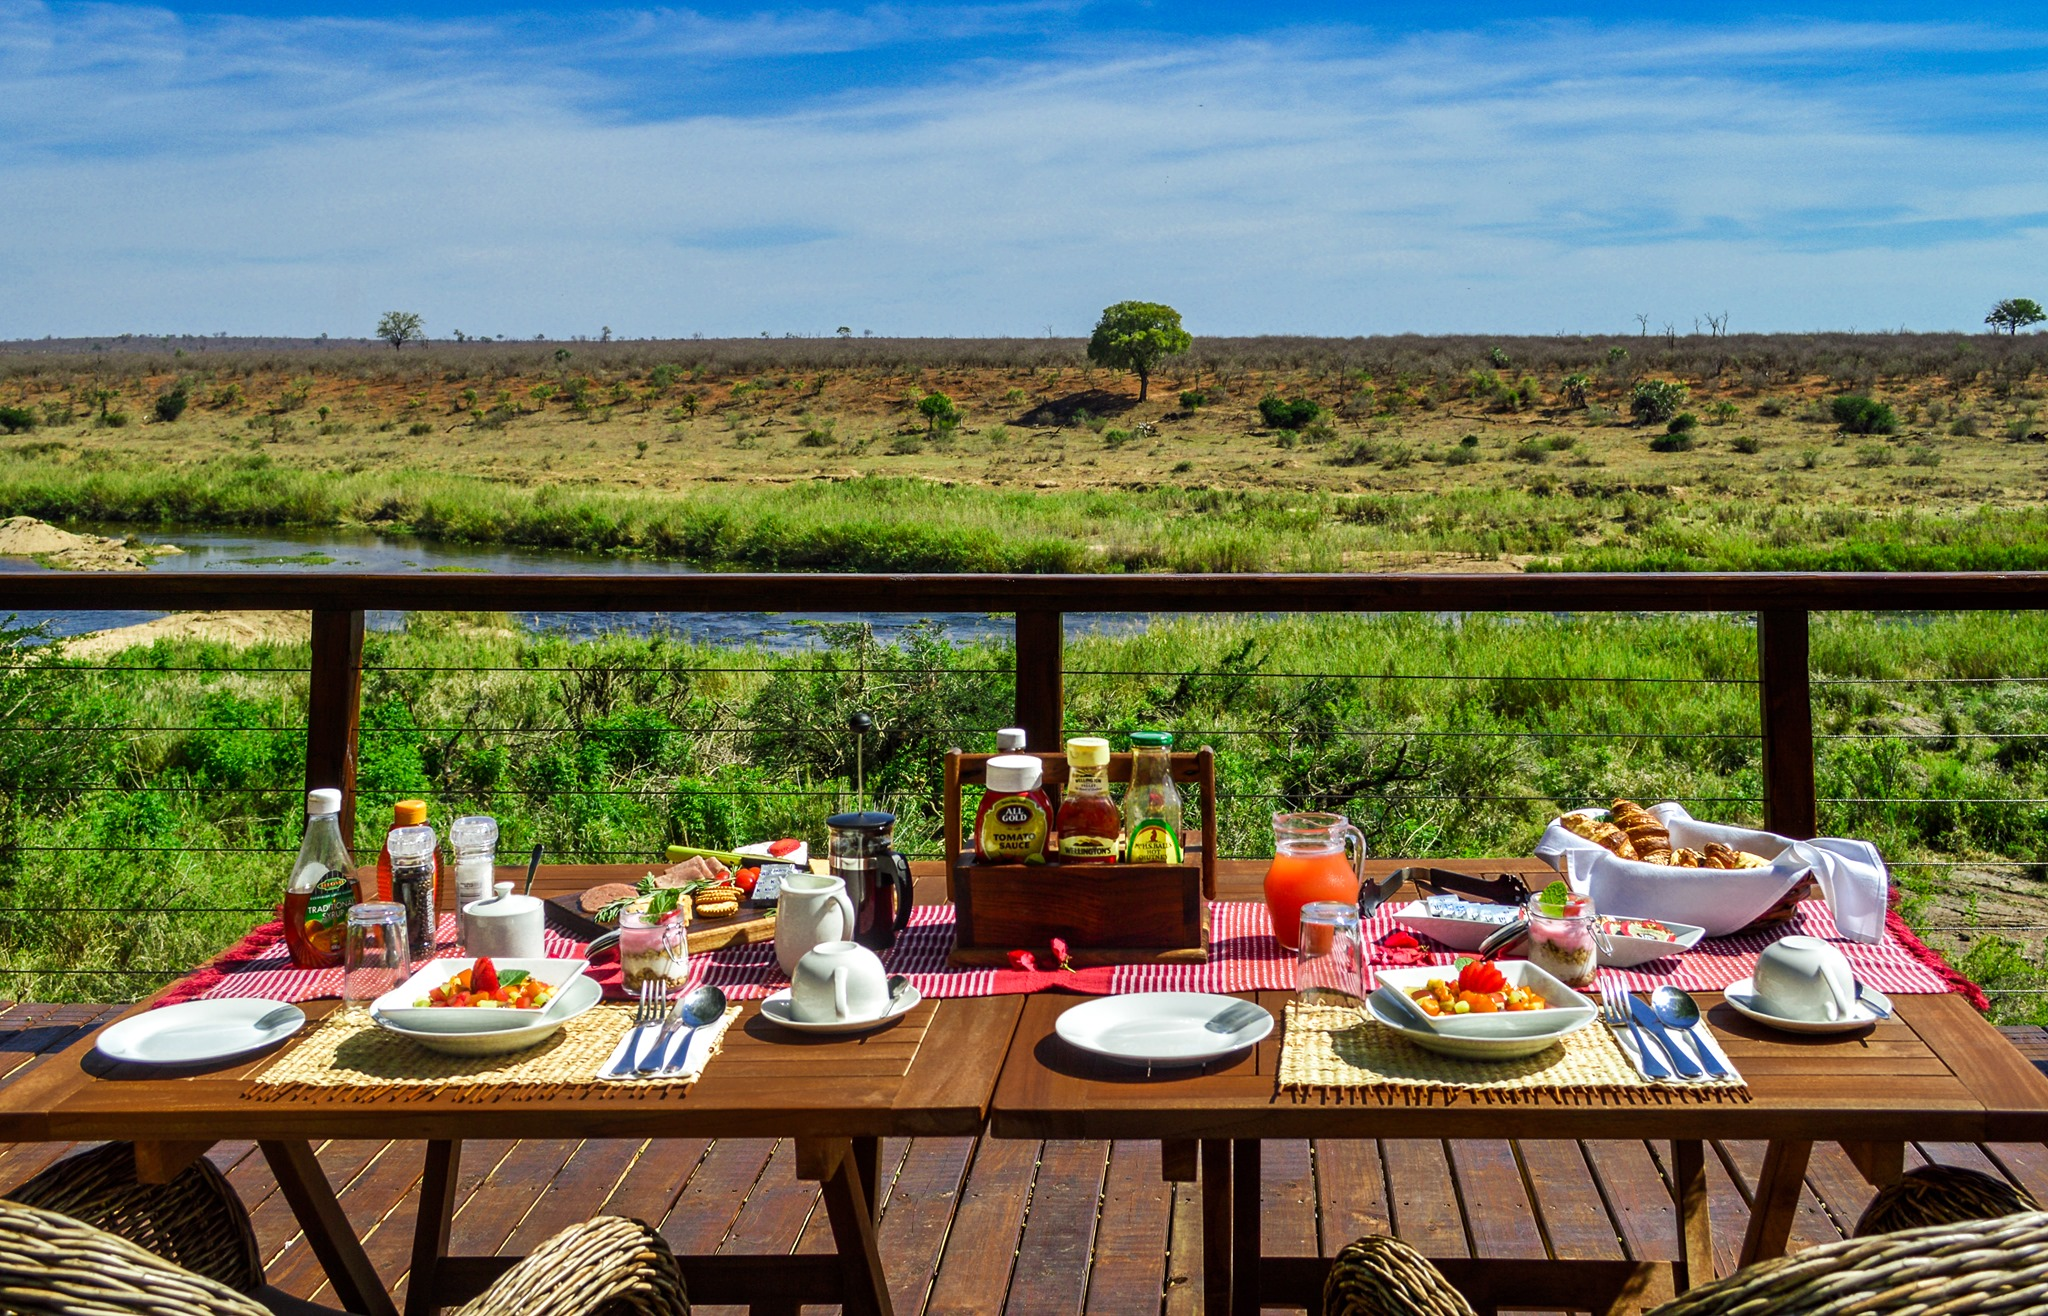 Breakfast spread with a view from the deck at Bucklers Africa Lodge